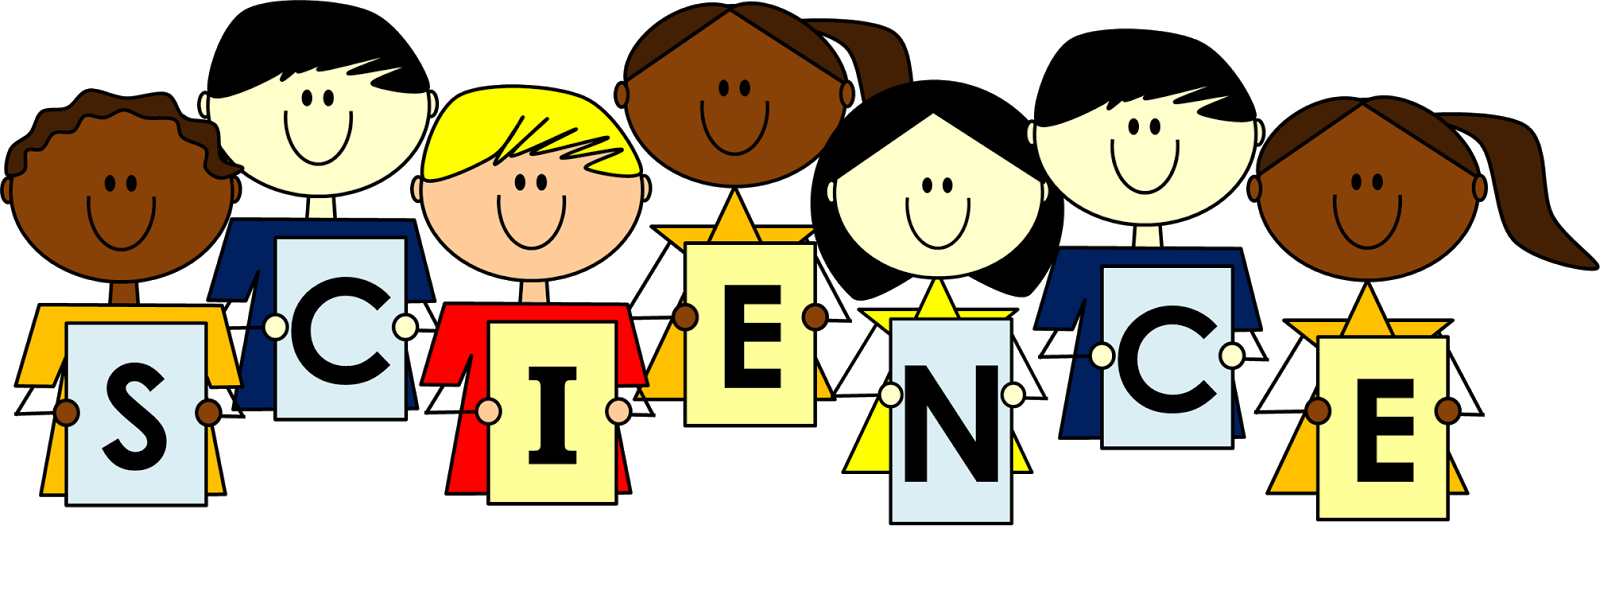 royalty free Experiments group for kids. Experiment clipart math science